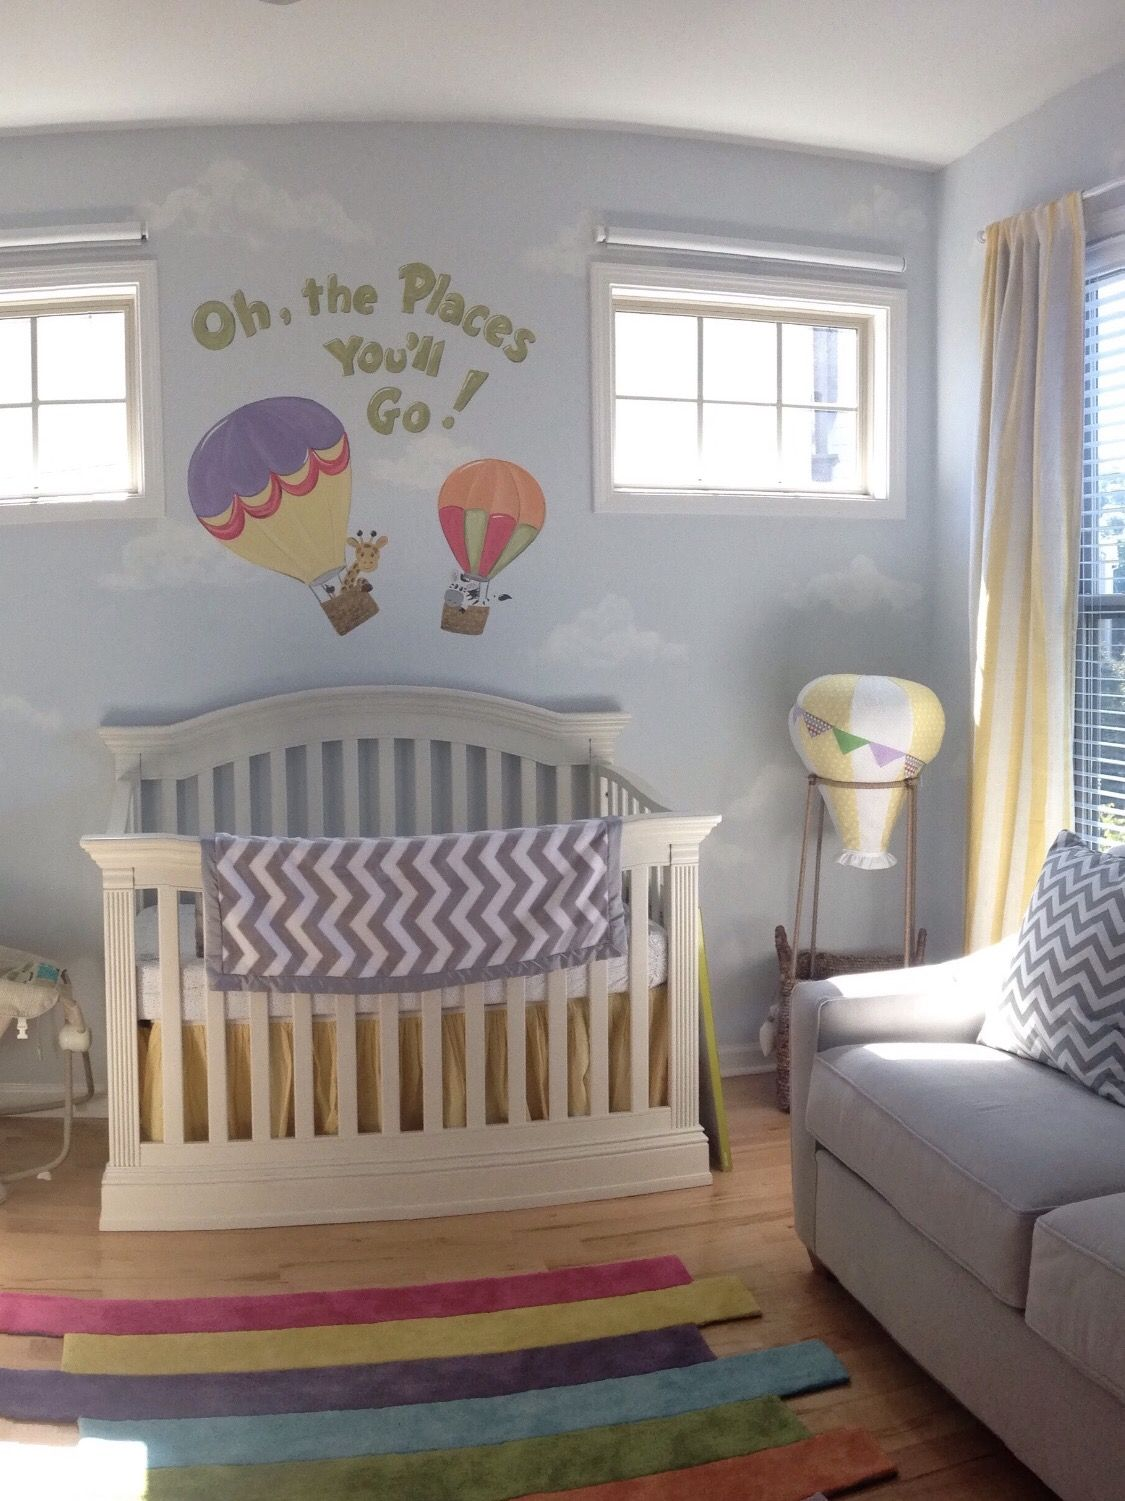 Nursery Decor, Hot Air Balloon, Oh the places you'll go